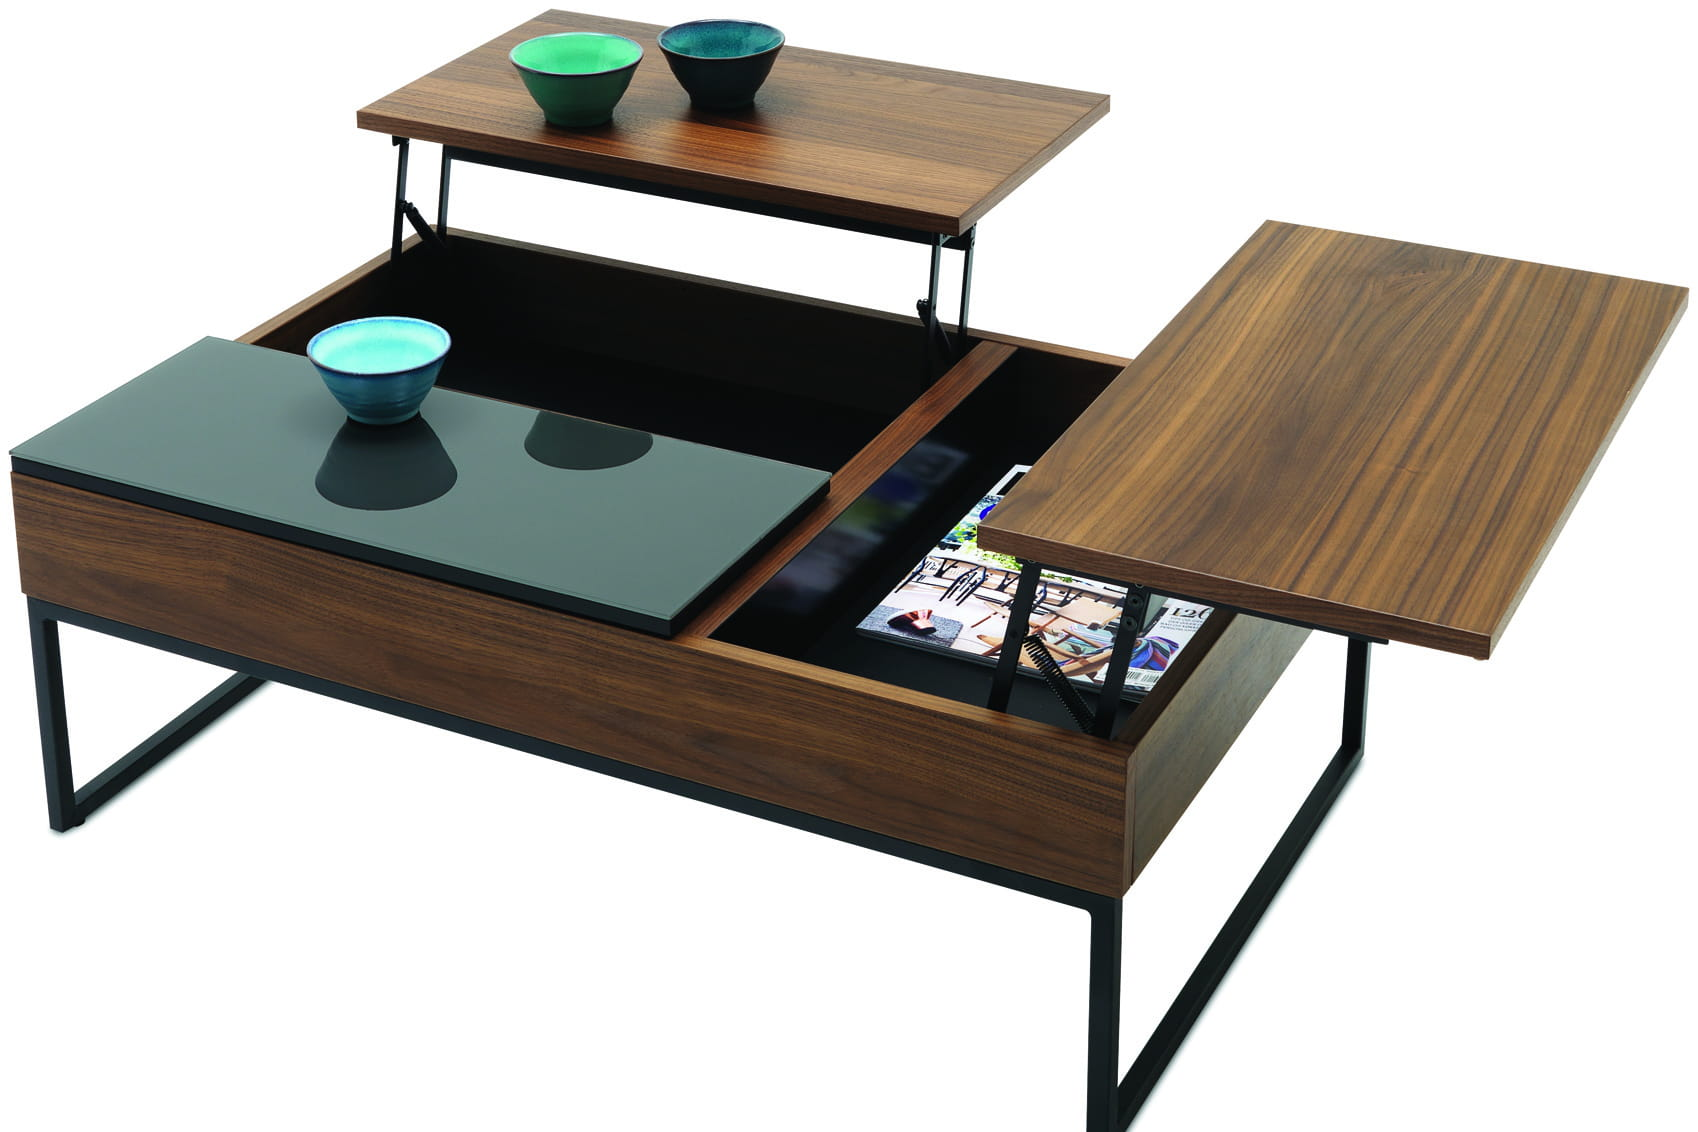 table basse avec espace de rangement boconcept. Black Bedroom Furniture Sets. Home Design Ideas